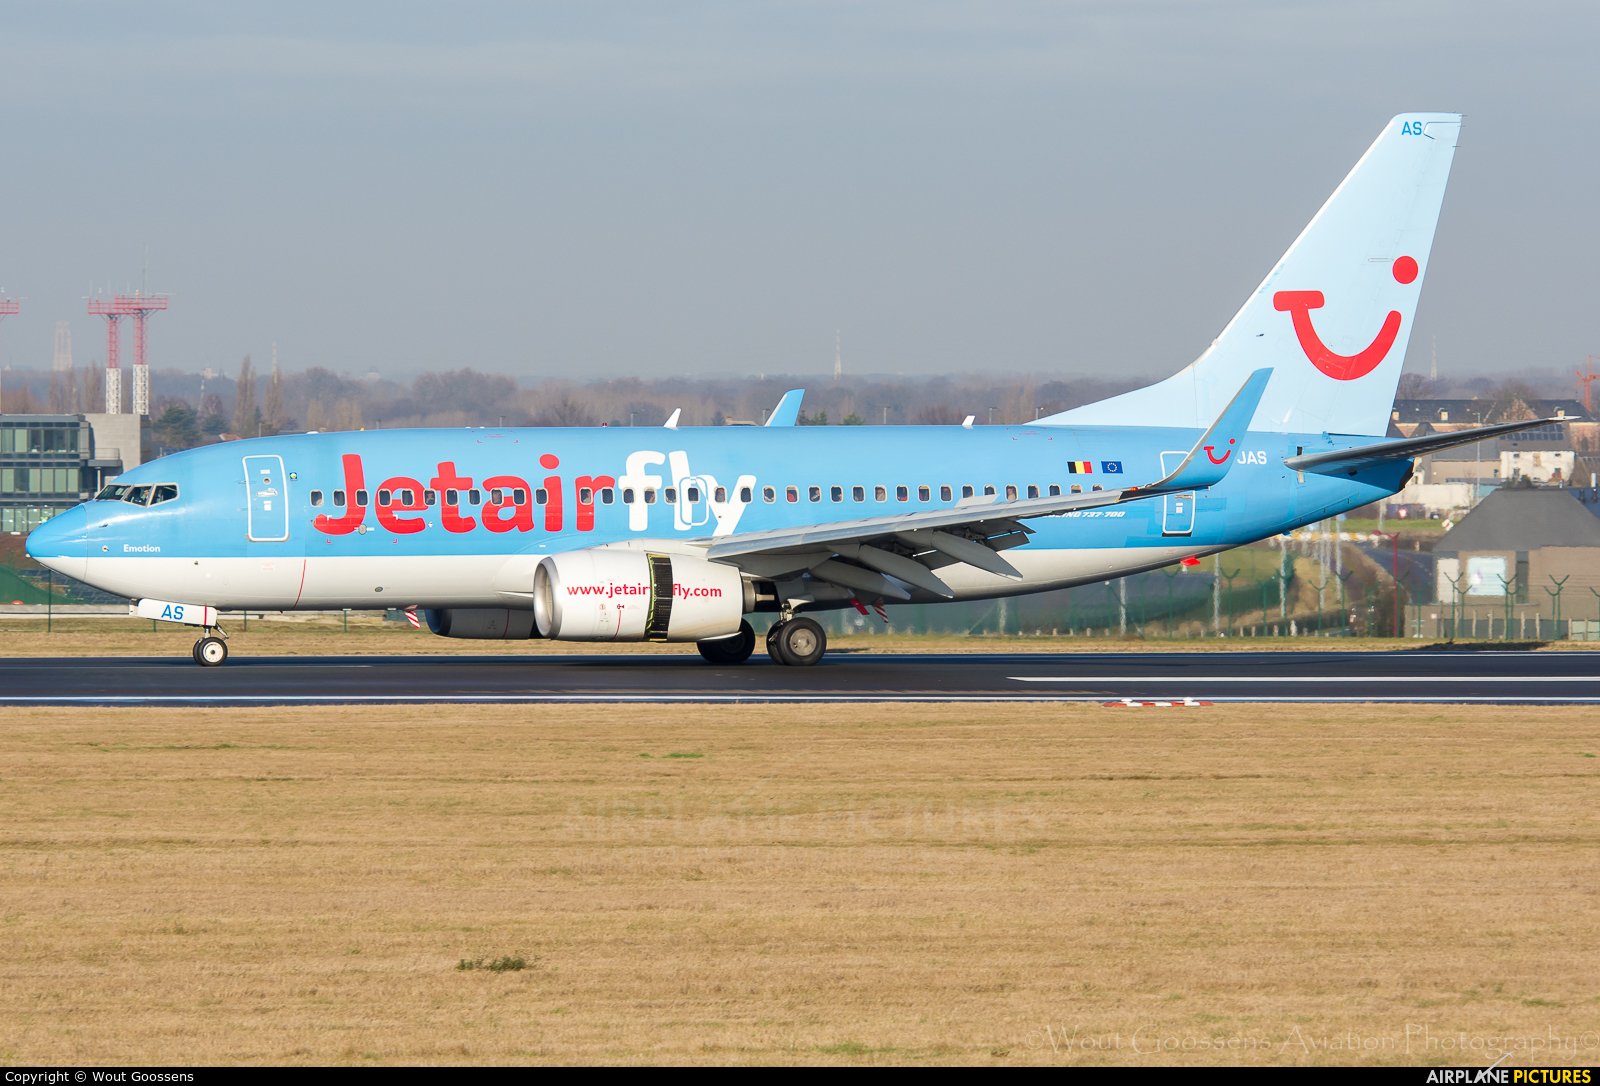 Jetairfly (TUI Airlines Belgium) OO-JAS aircraft at Brussels - Zaventem